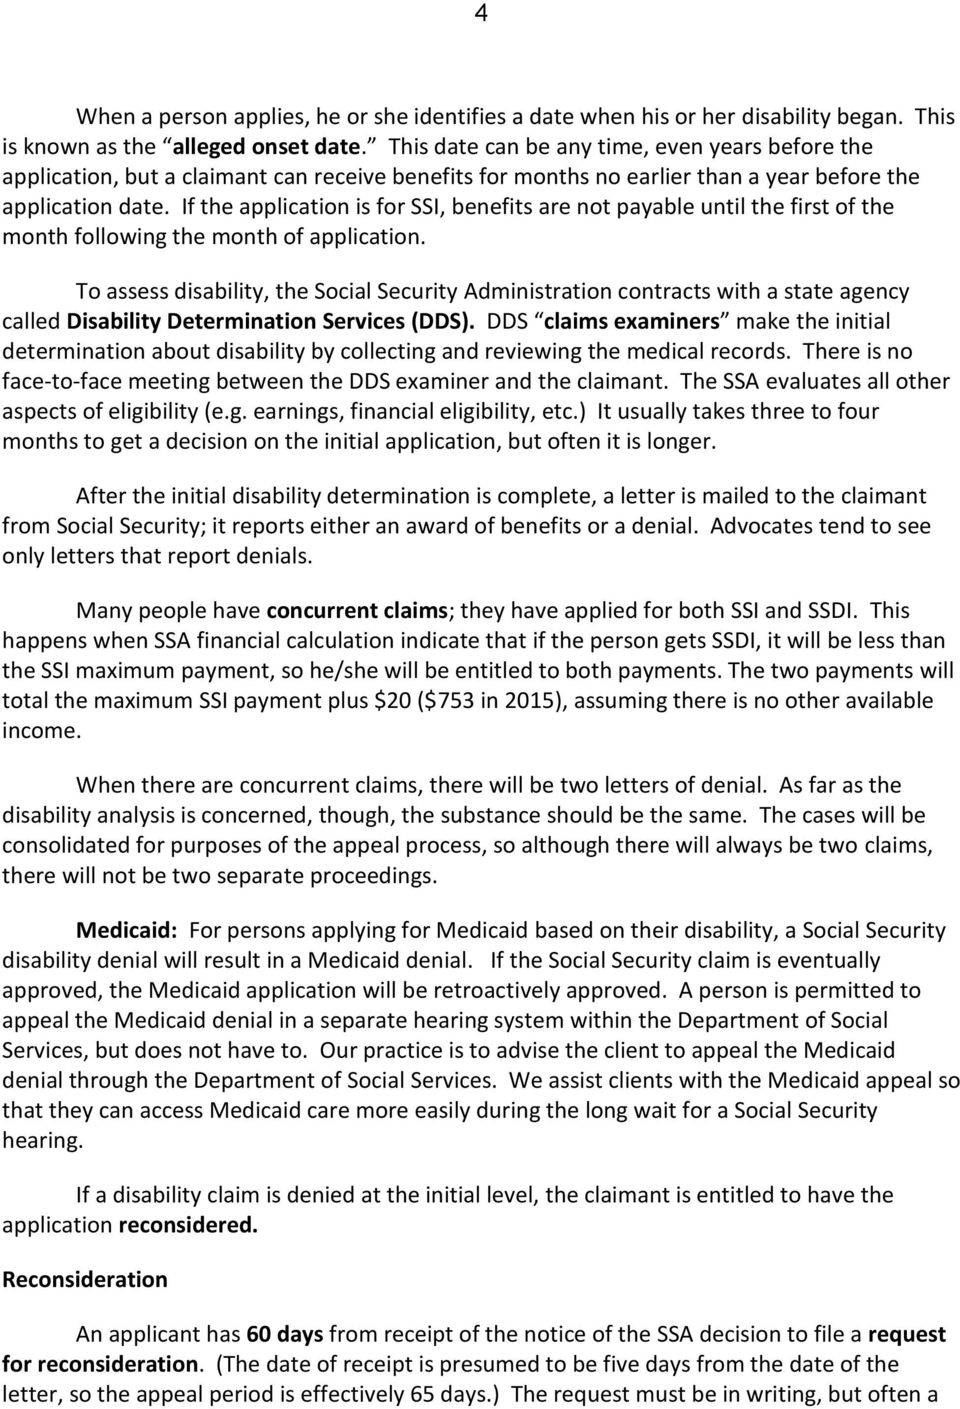 Disability within the Social Security System: An Overview of